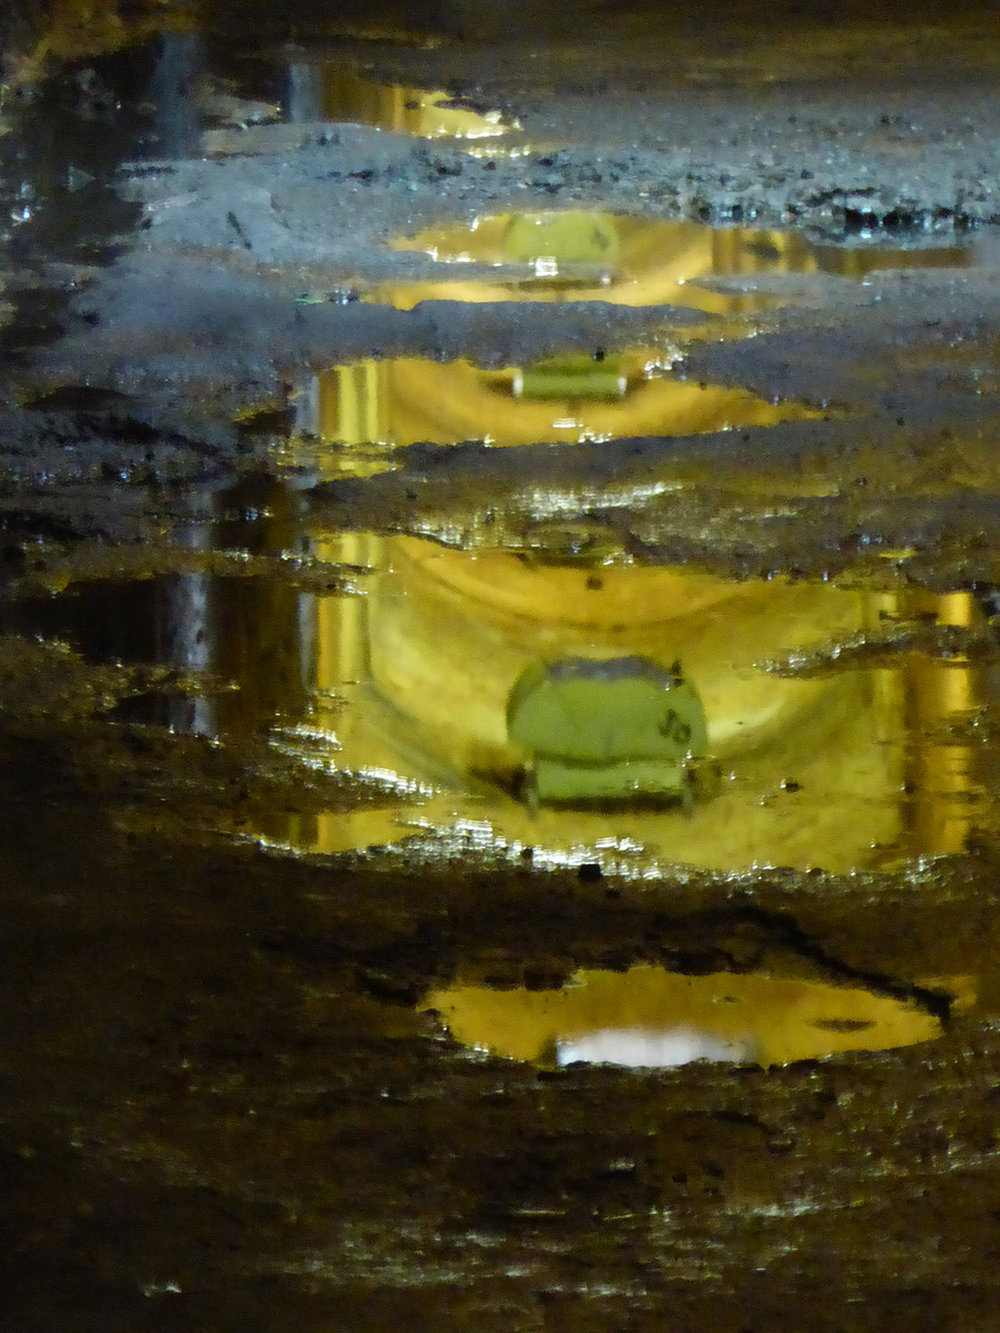 Underside of former coal chutes reflected in puddles on floor of tunnel